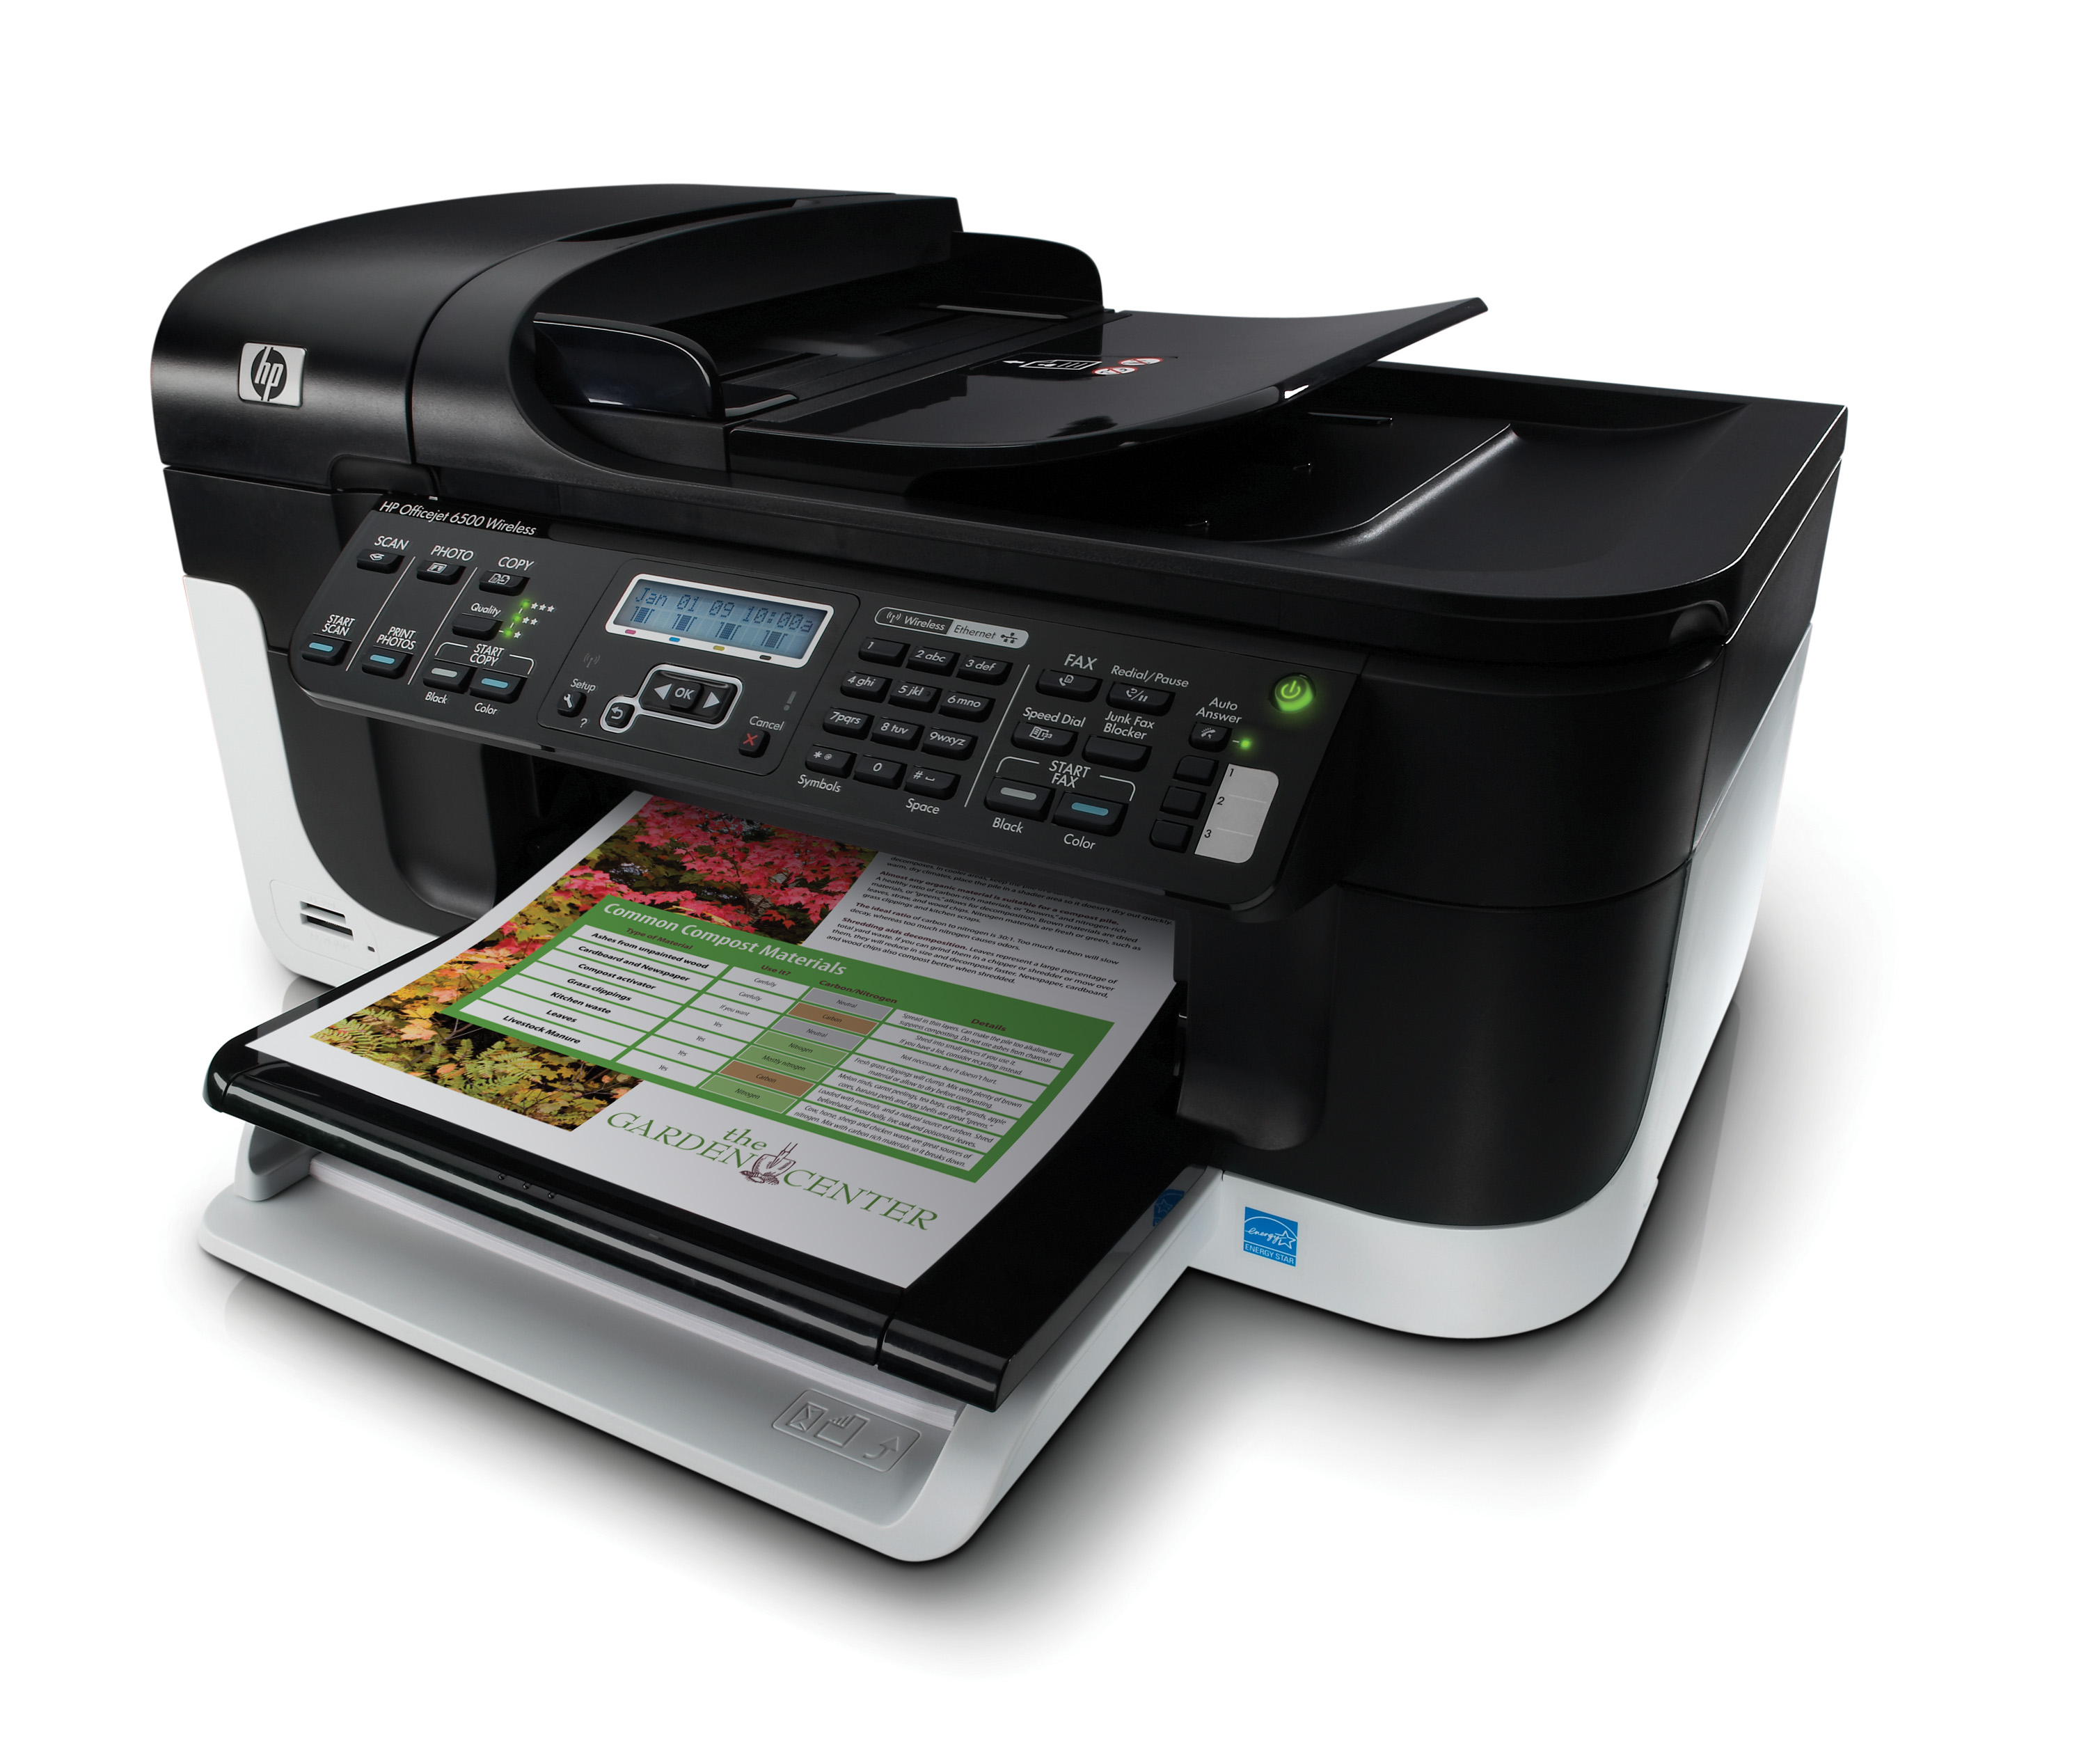 Hp Officejet 6500 Wireless Default Password U0026 Login Manual Guide